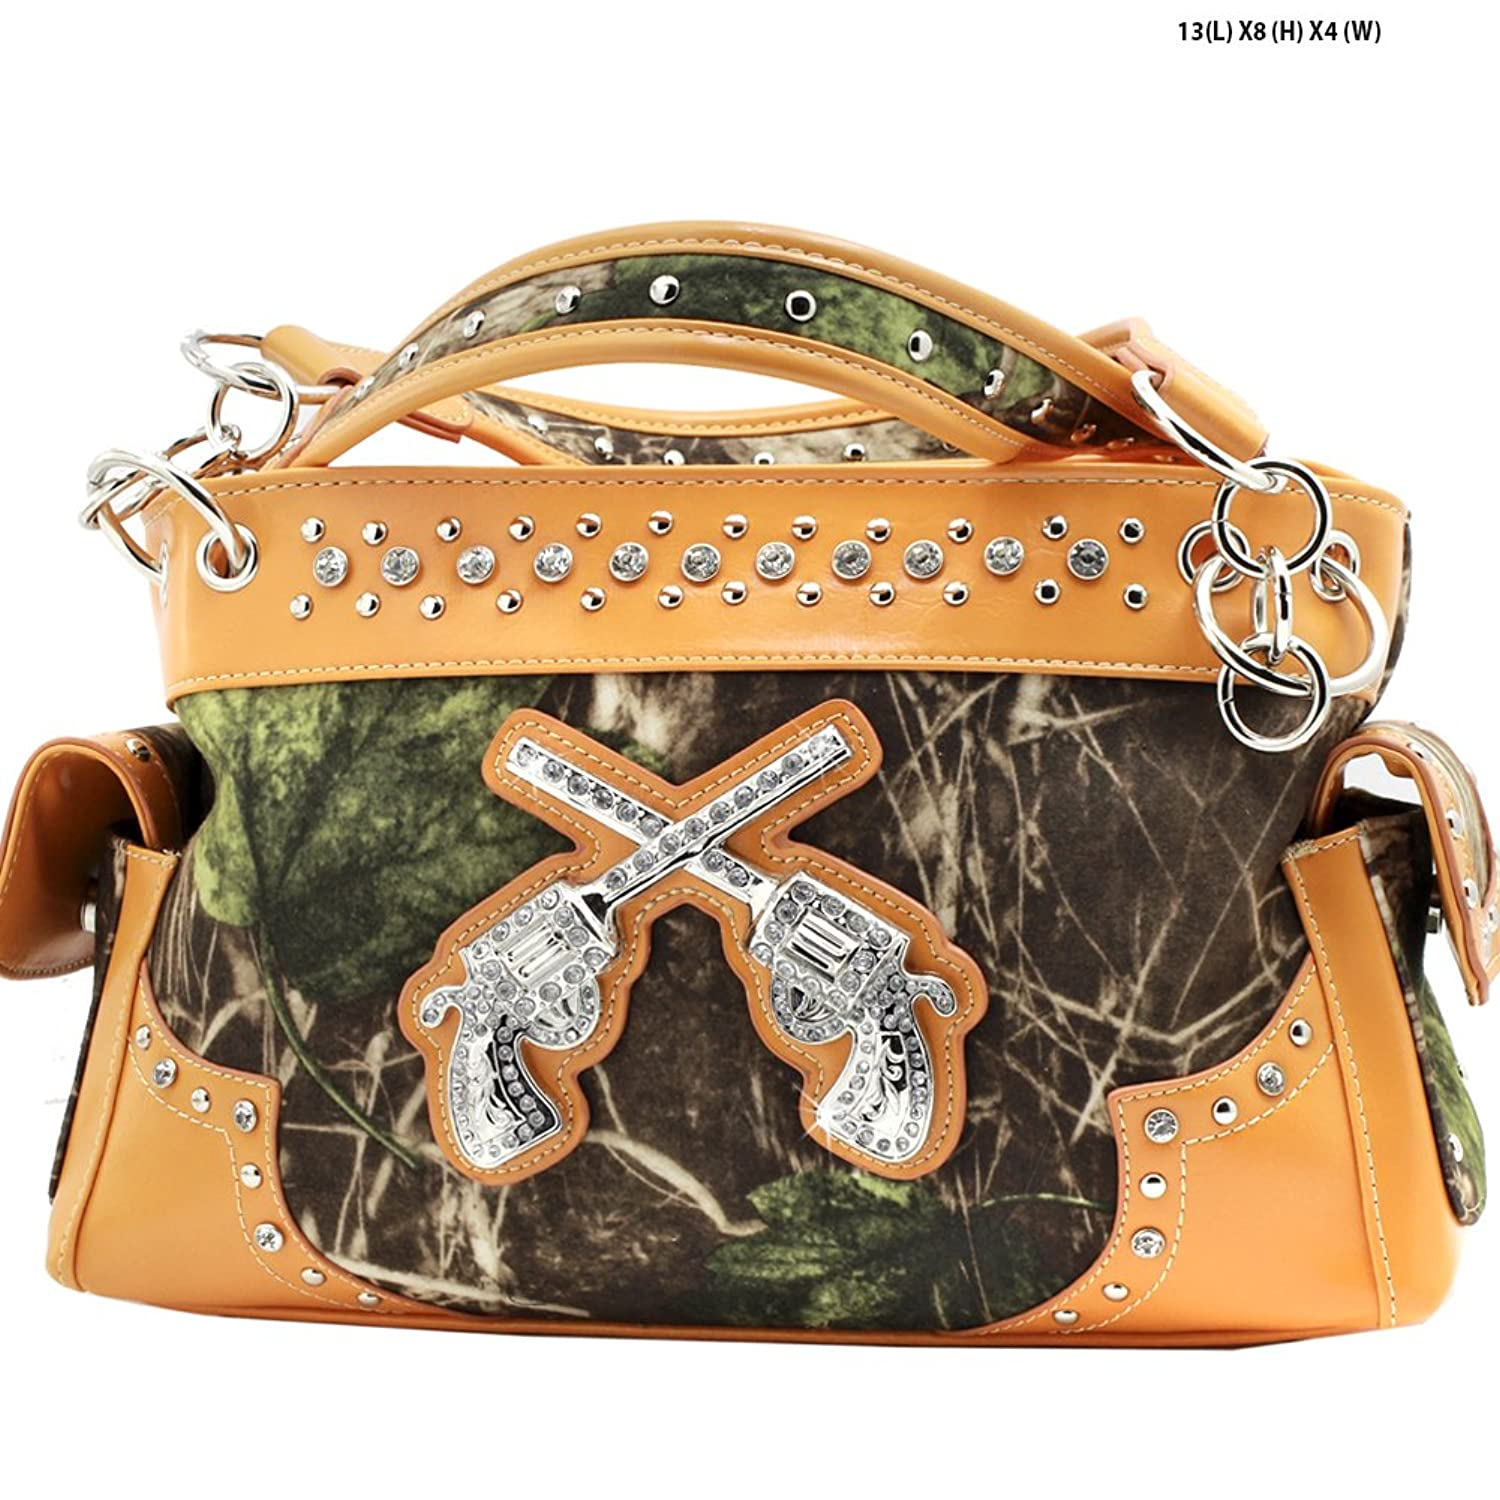 Western Concealed Carry Crossed Guns Purse Camouflage Camo Handbag D3